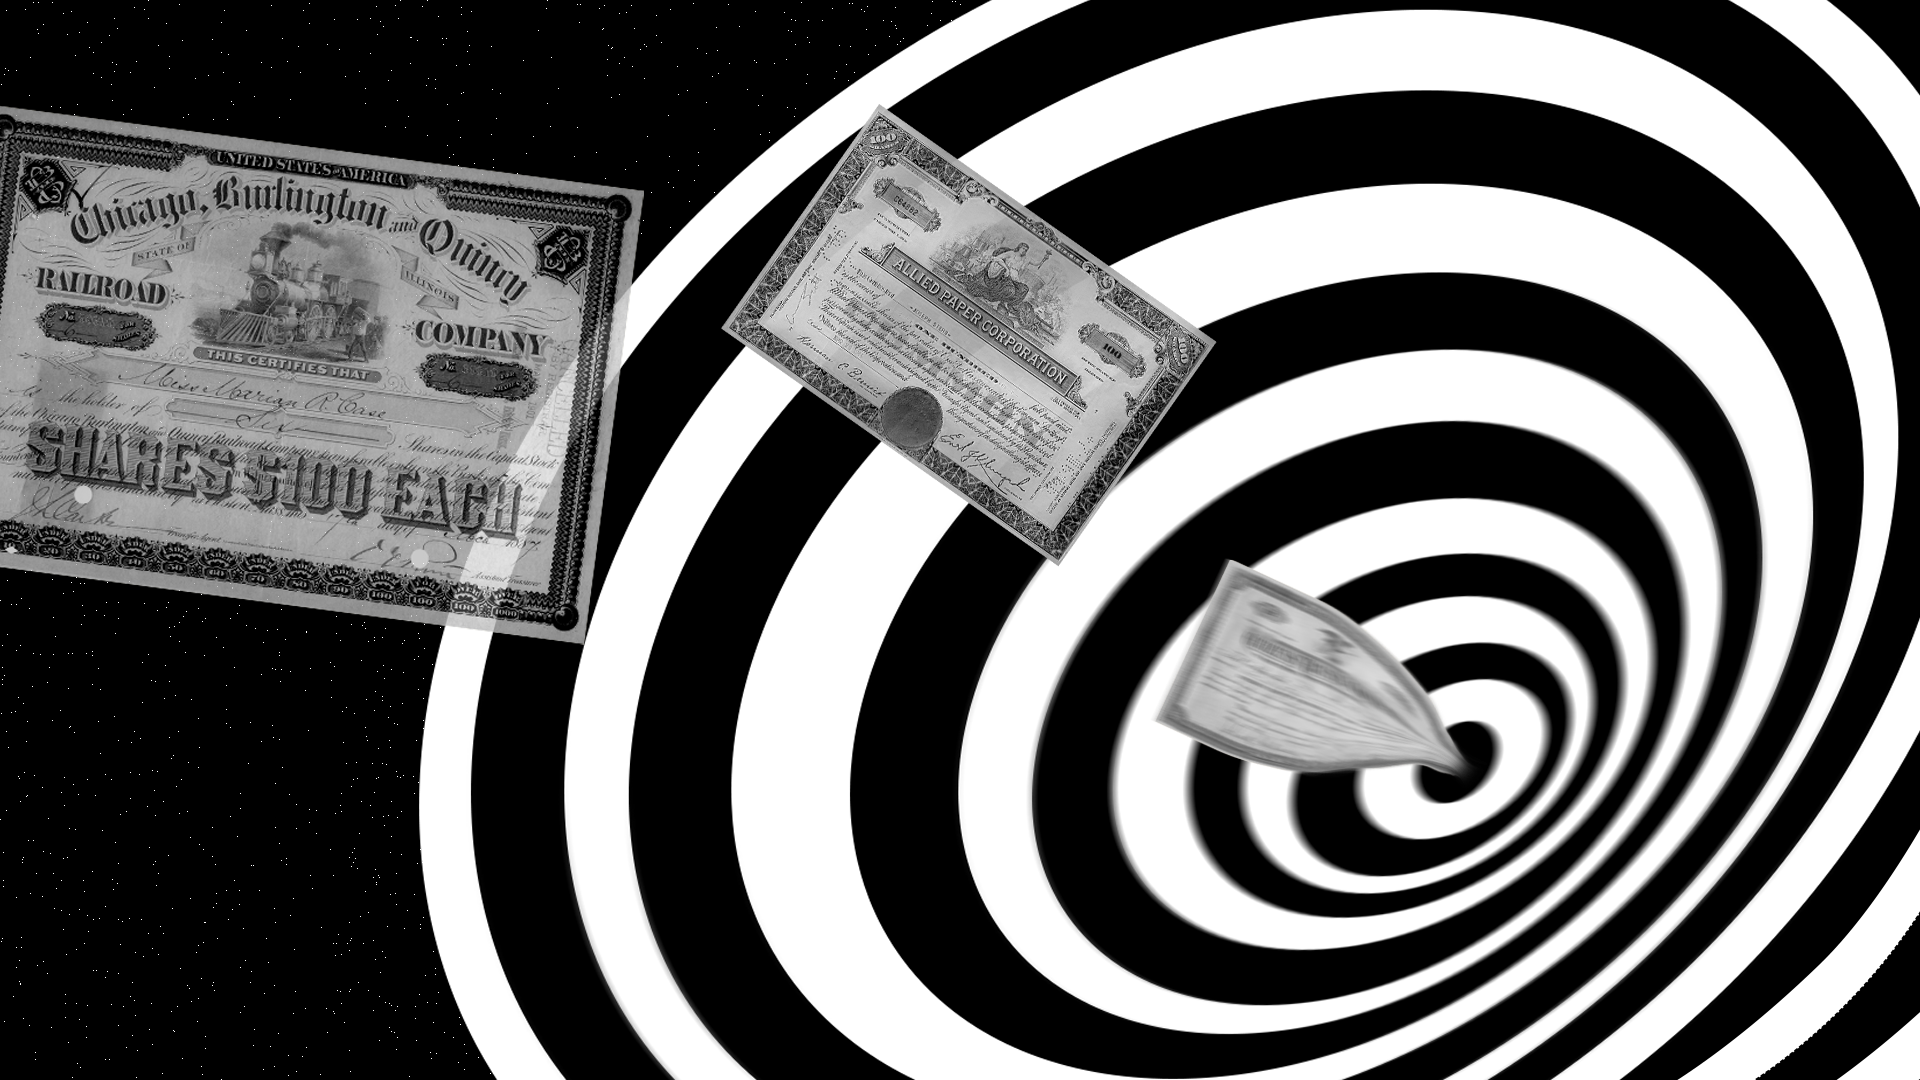 Illustration of stock certificates being sucked into a Twilight Zone style warp hole.